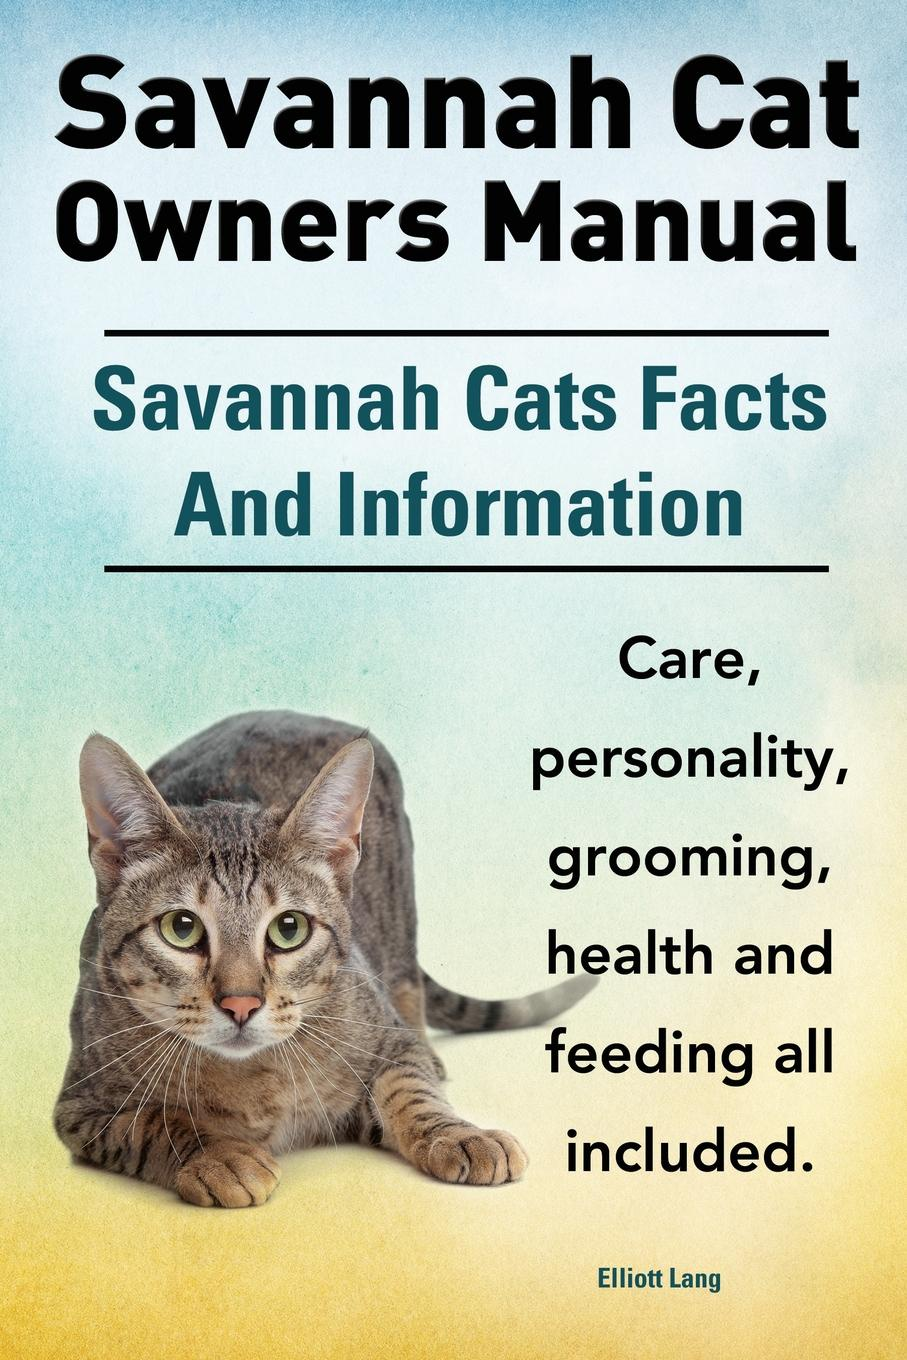 Elliott Lang Savannah Cat Owners Manual. Savannah Cats Facts and Information. Savannah Cat Care, Personality, Grooming, Health and Feeding All Included. цена в Москве и Питере